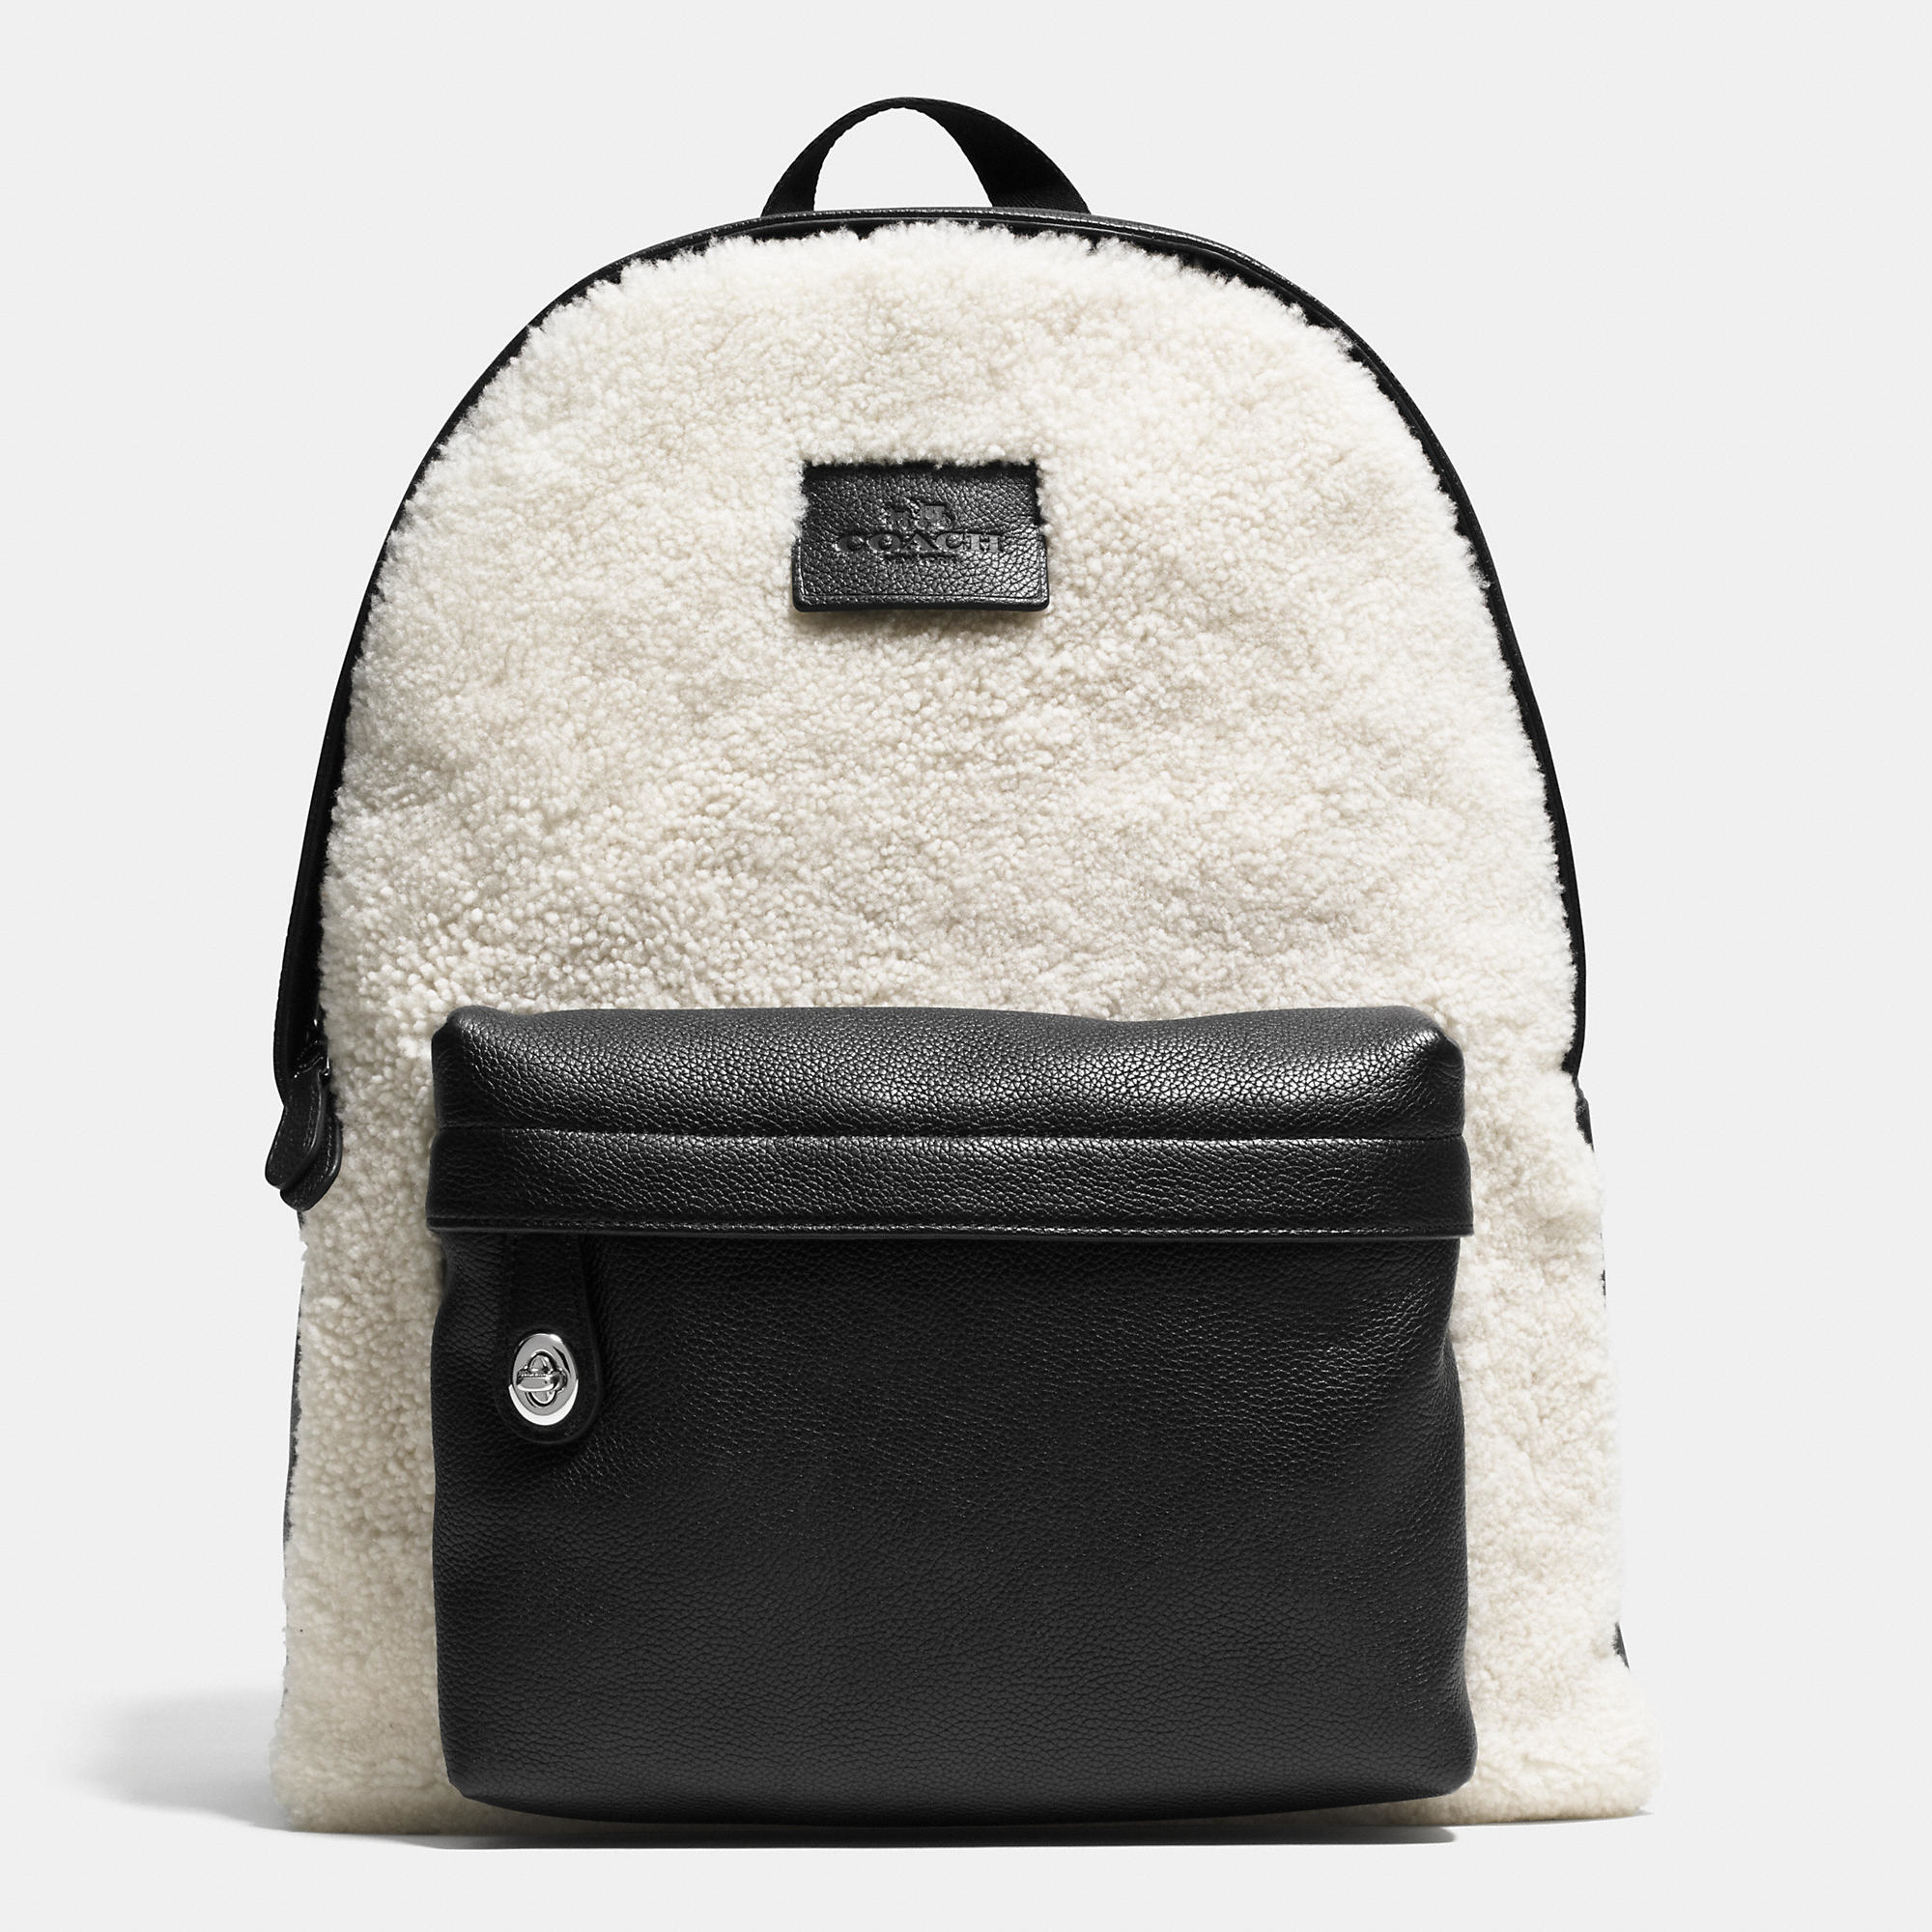 coach apparel outlet stui  coach mens backpack black friday